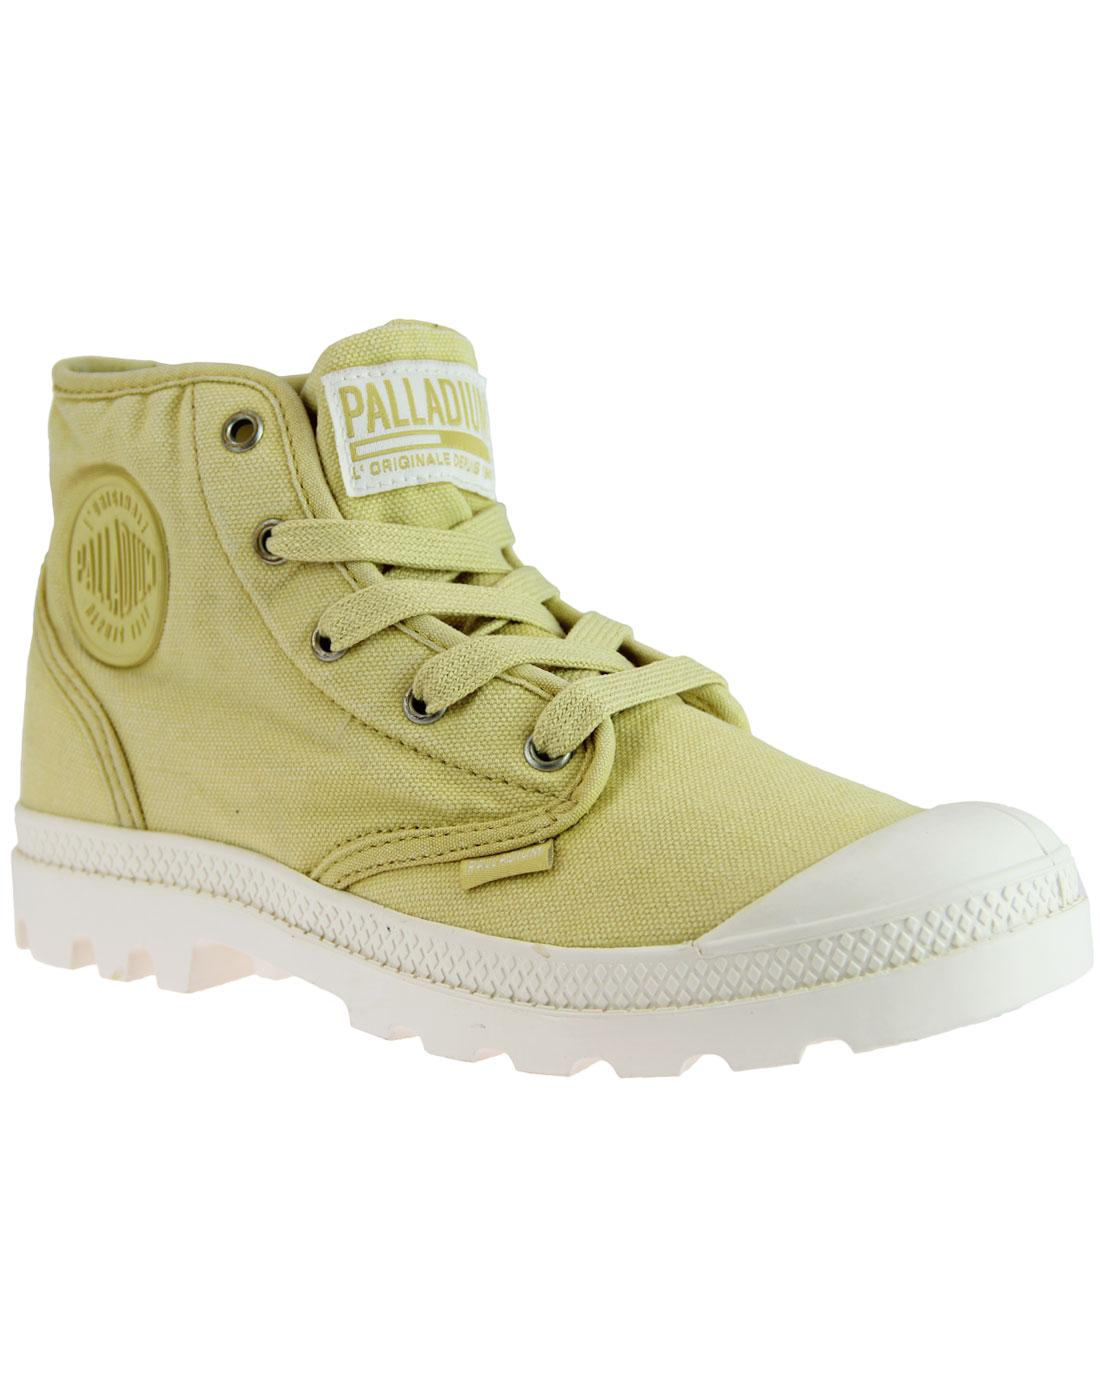 Pampa HI PALLADIUM Women's Retro Canvas Boots P/E